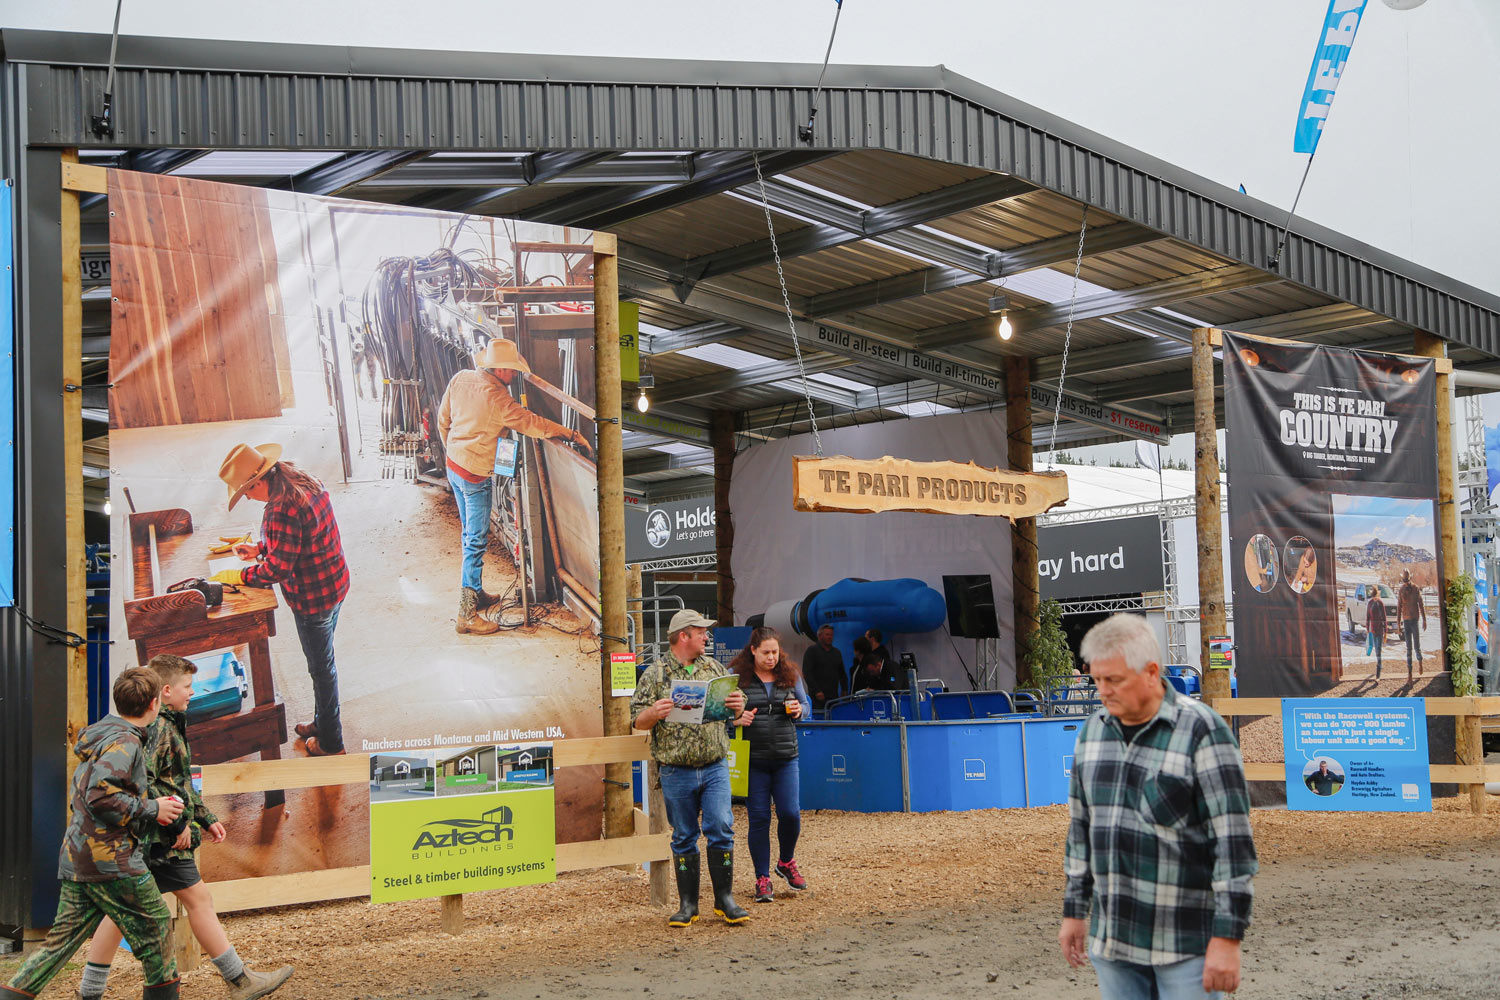 Agriculture-Photographer-Stock-Photos-in-Use-at-Farm-Trade-Show-01.jpg